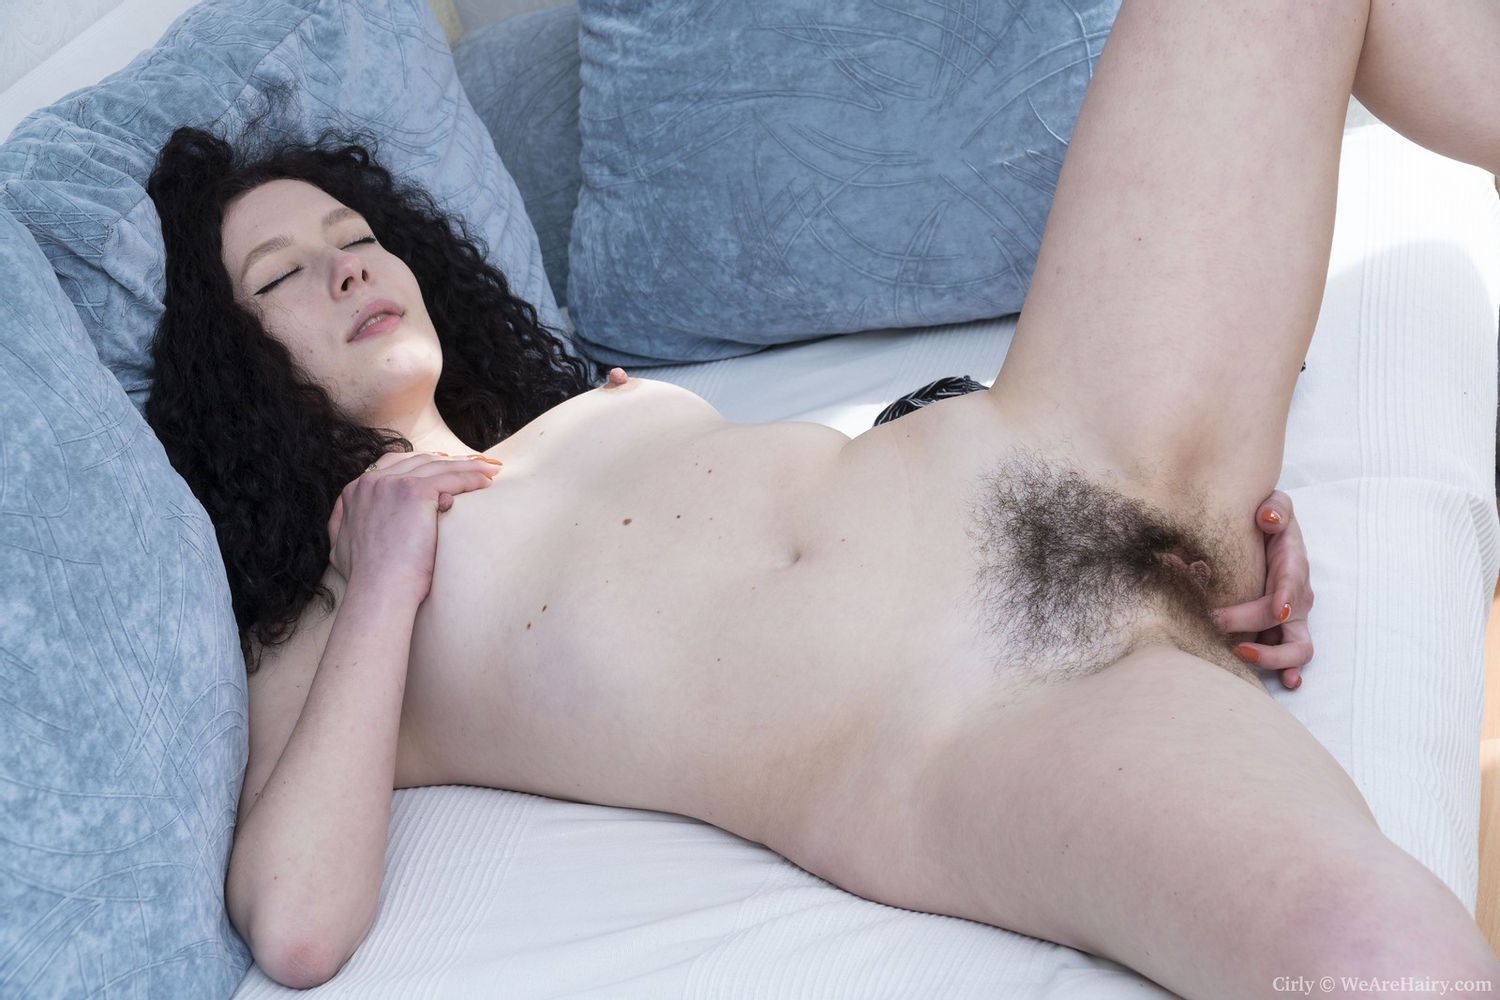 Dark haired amateur sex model fingers hairy pussy and orgasms